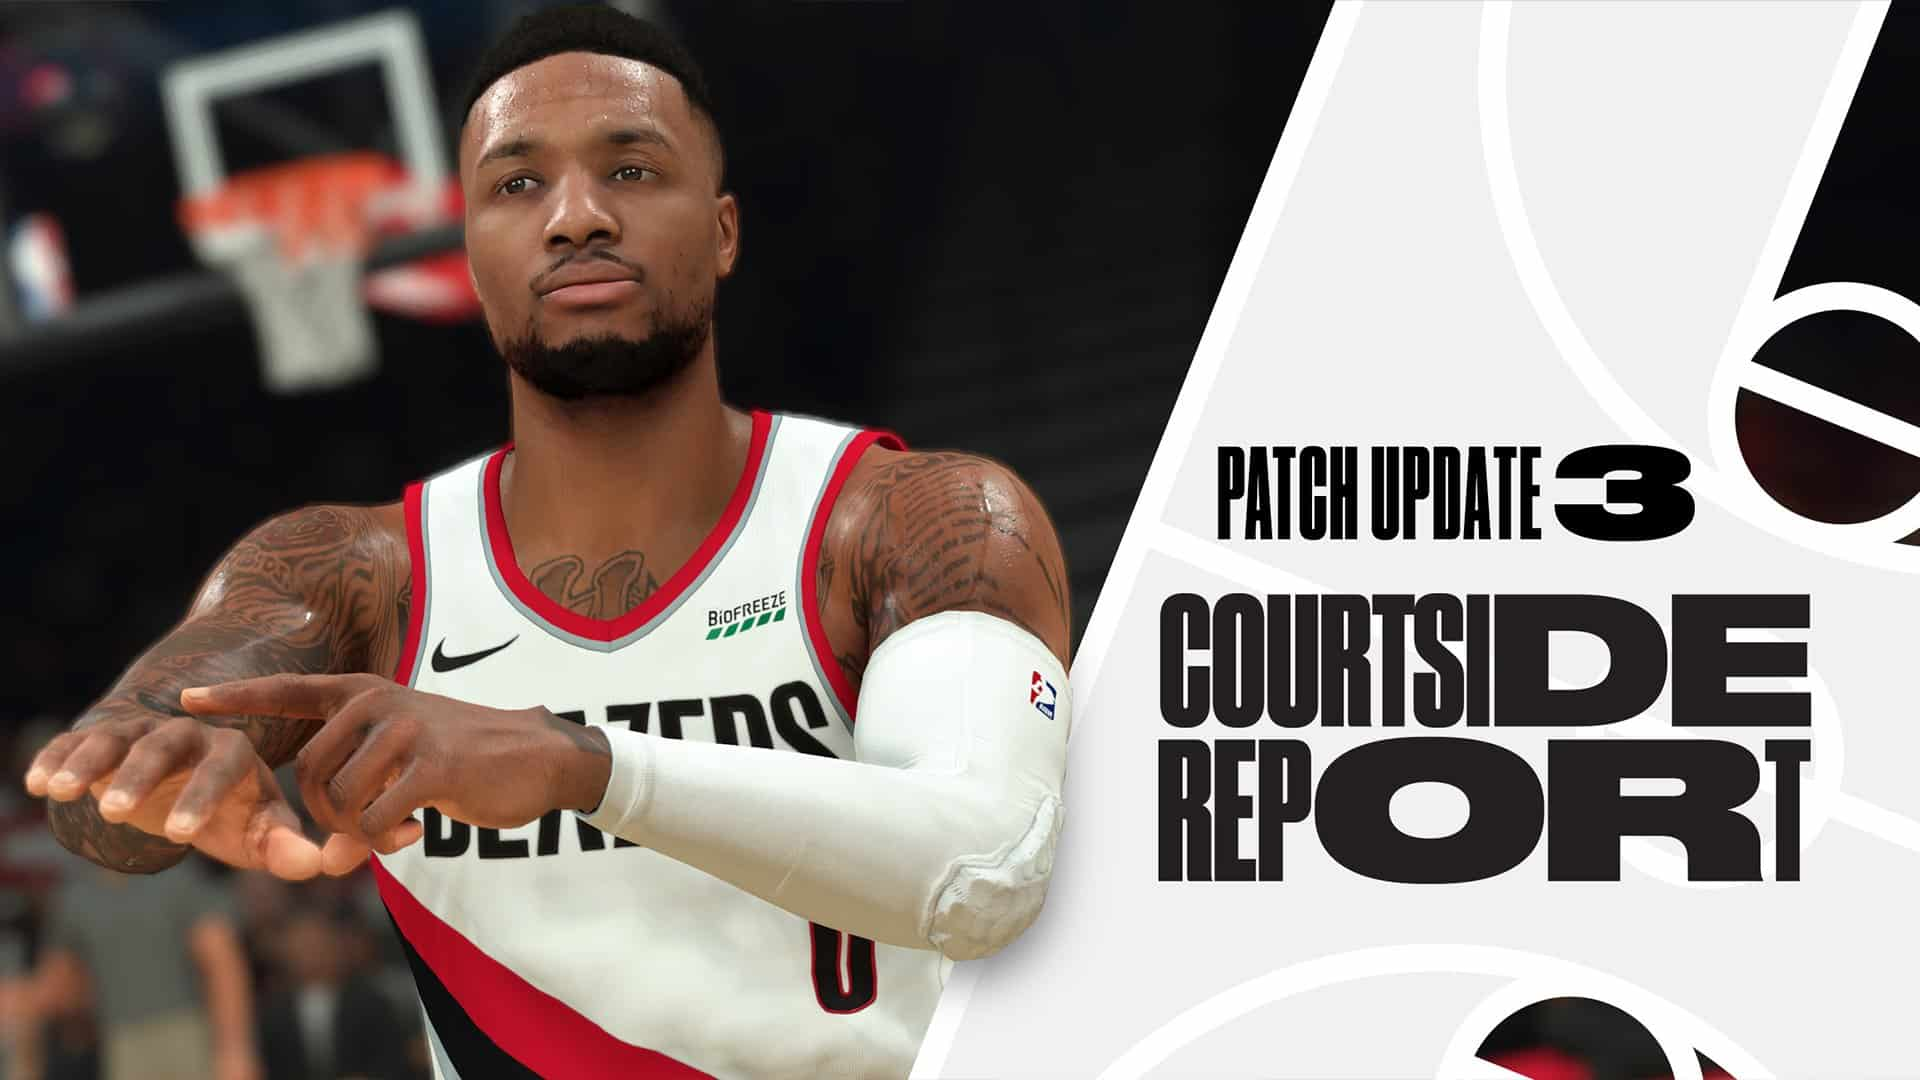 Nba 2k21 Patch Update 3 Turns Game Into Nba 2spooky Sports Gamers Online